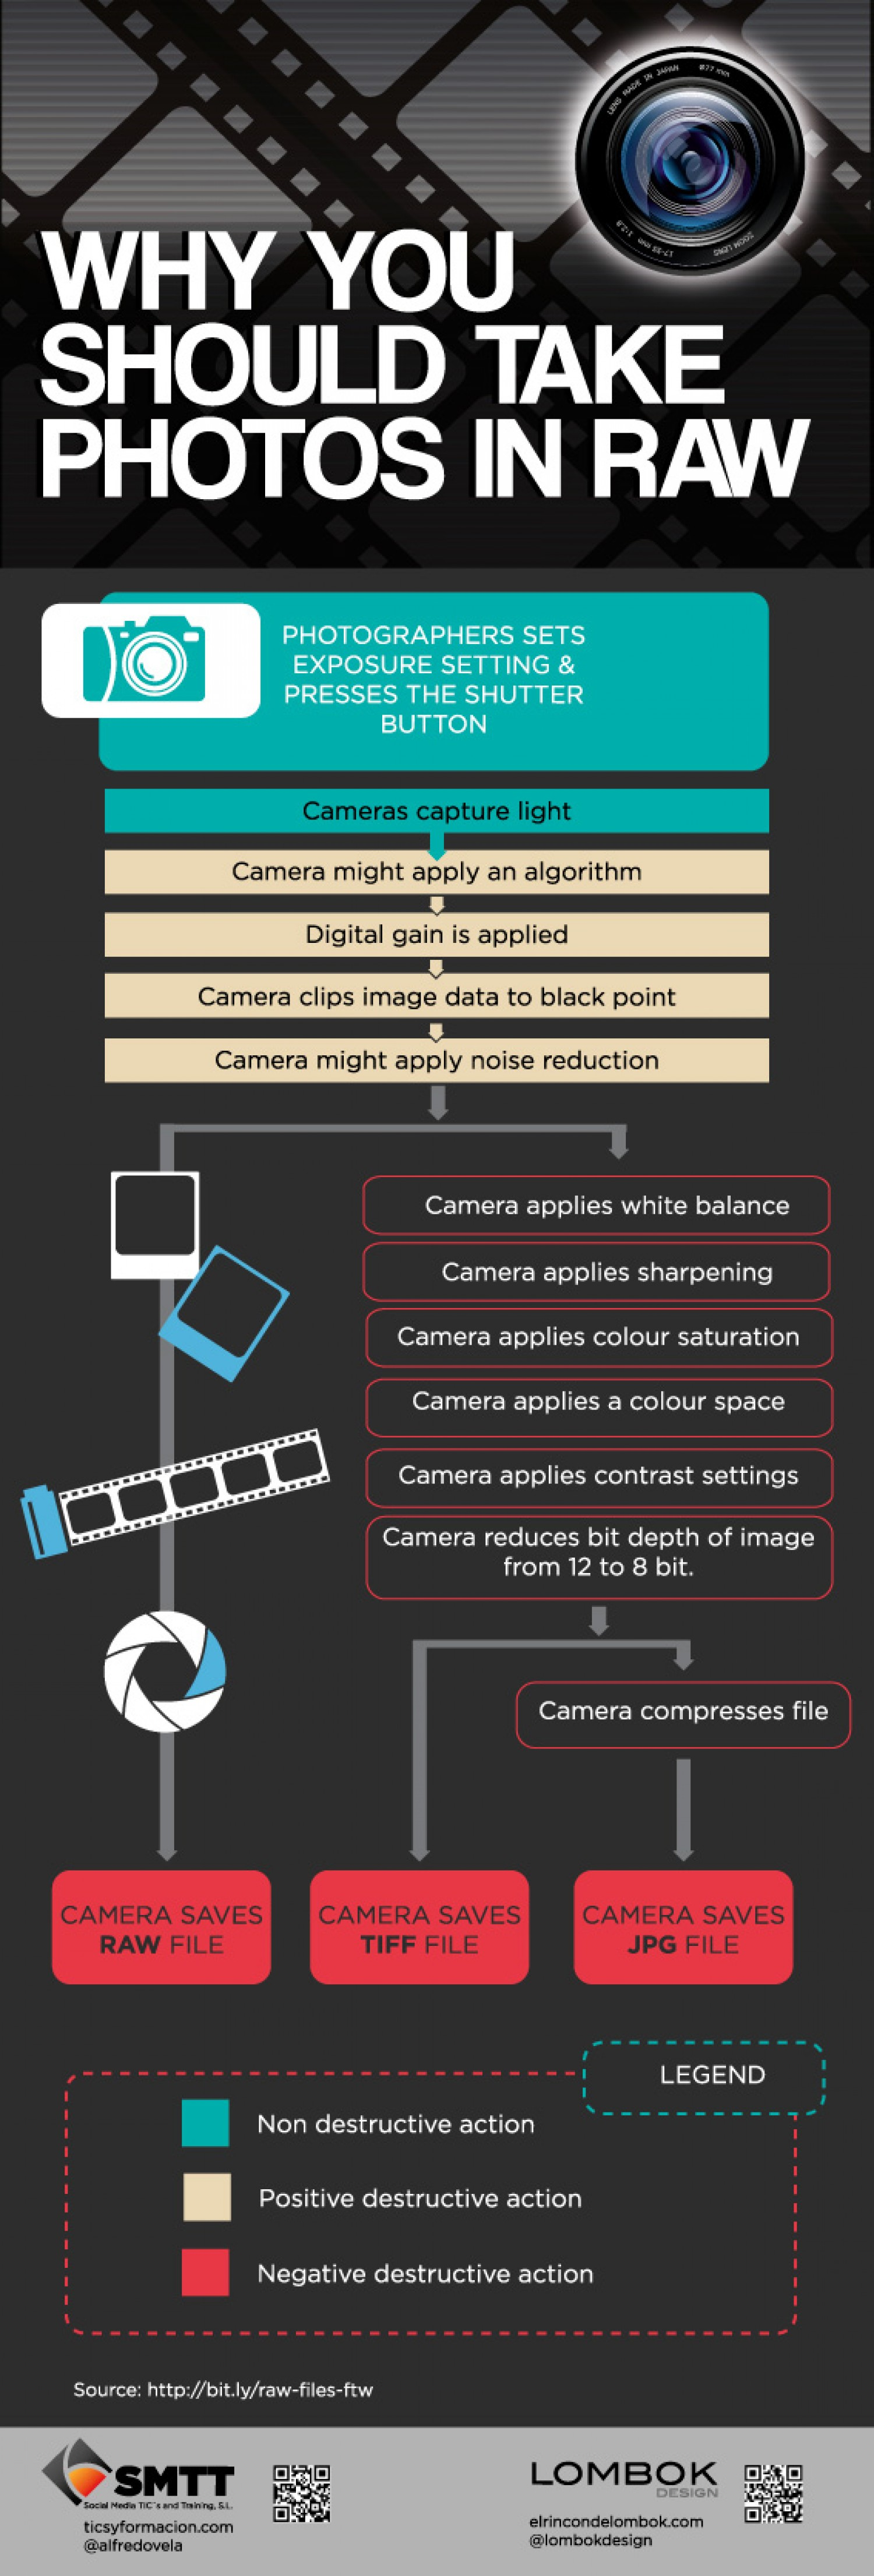 18. Why you should take photos in RAW